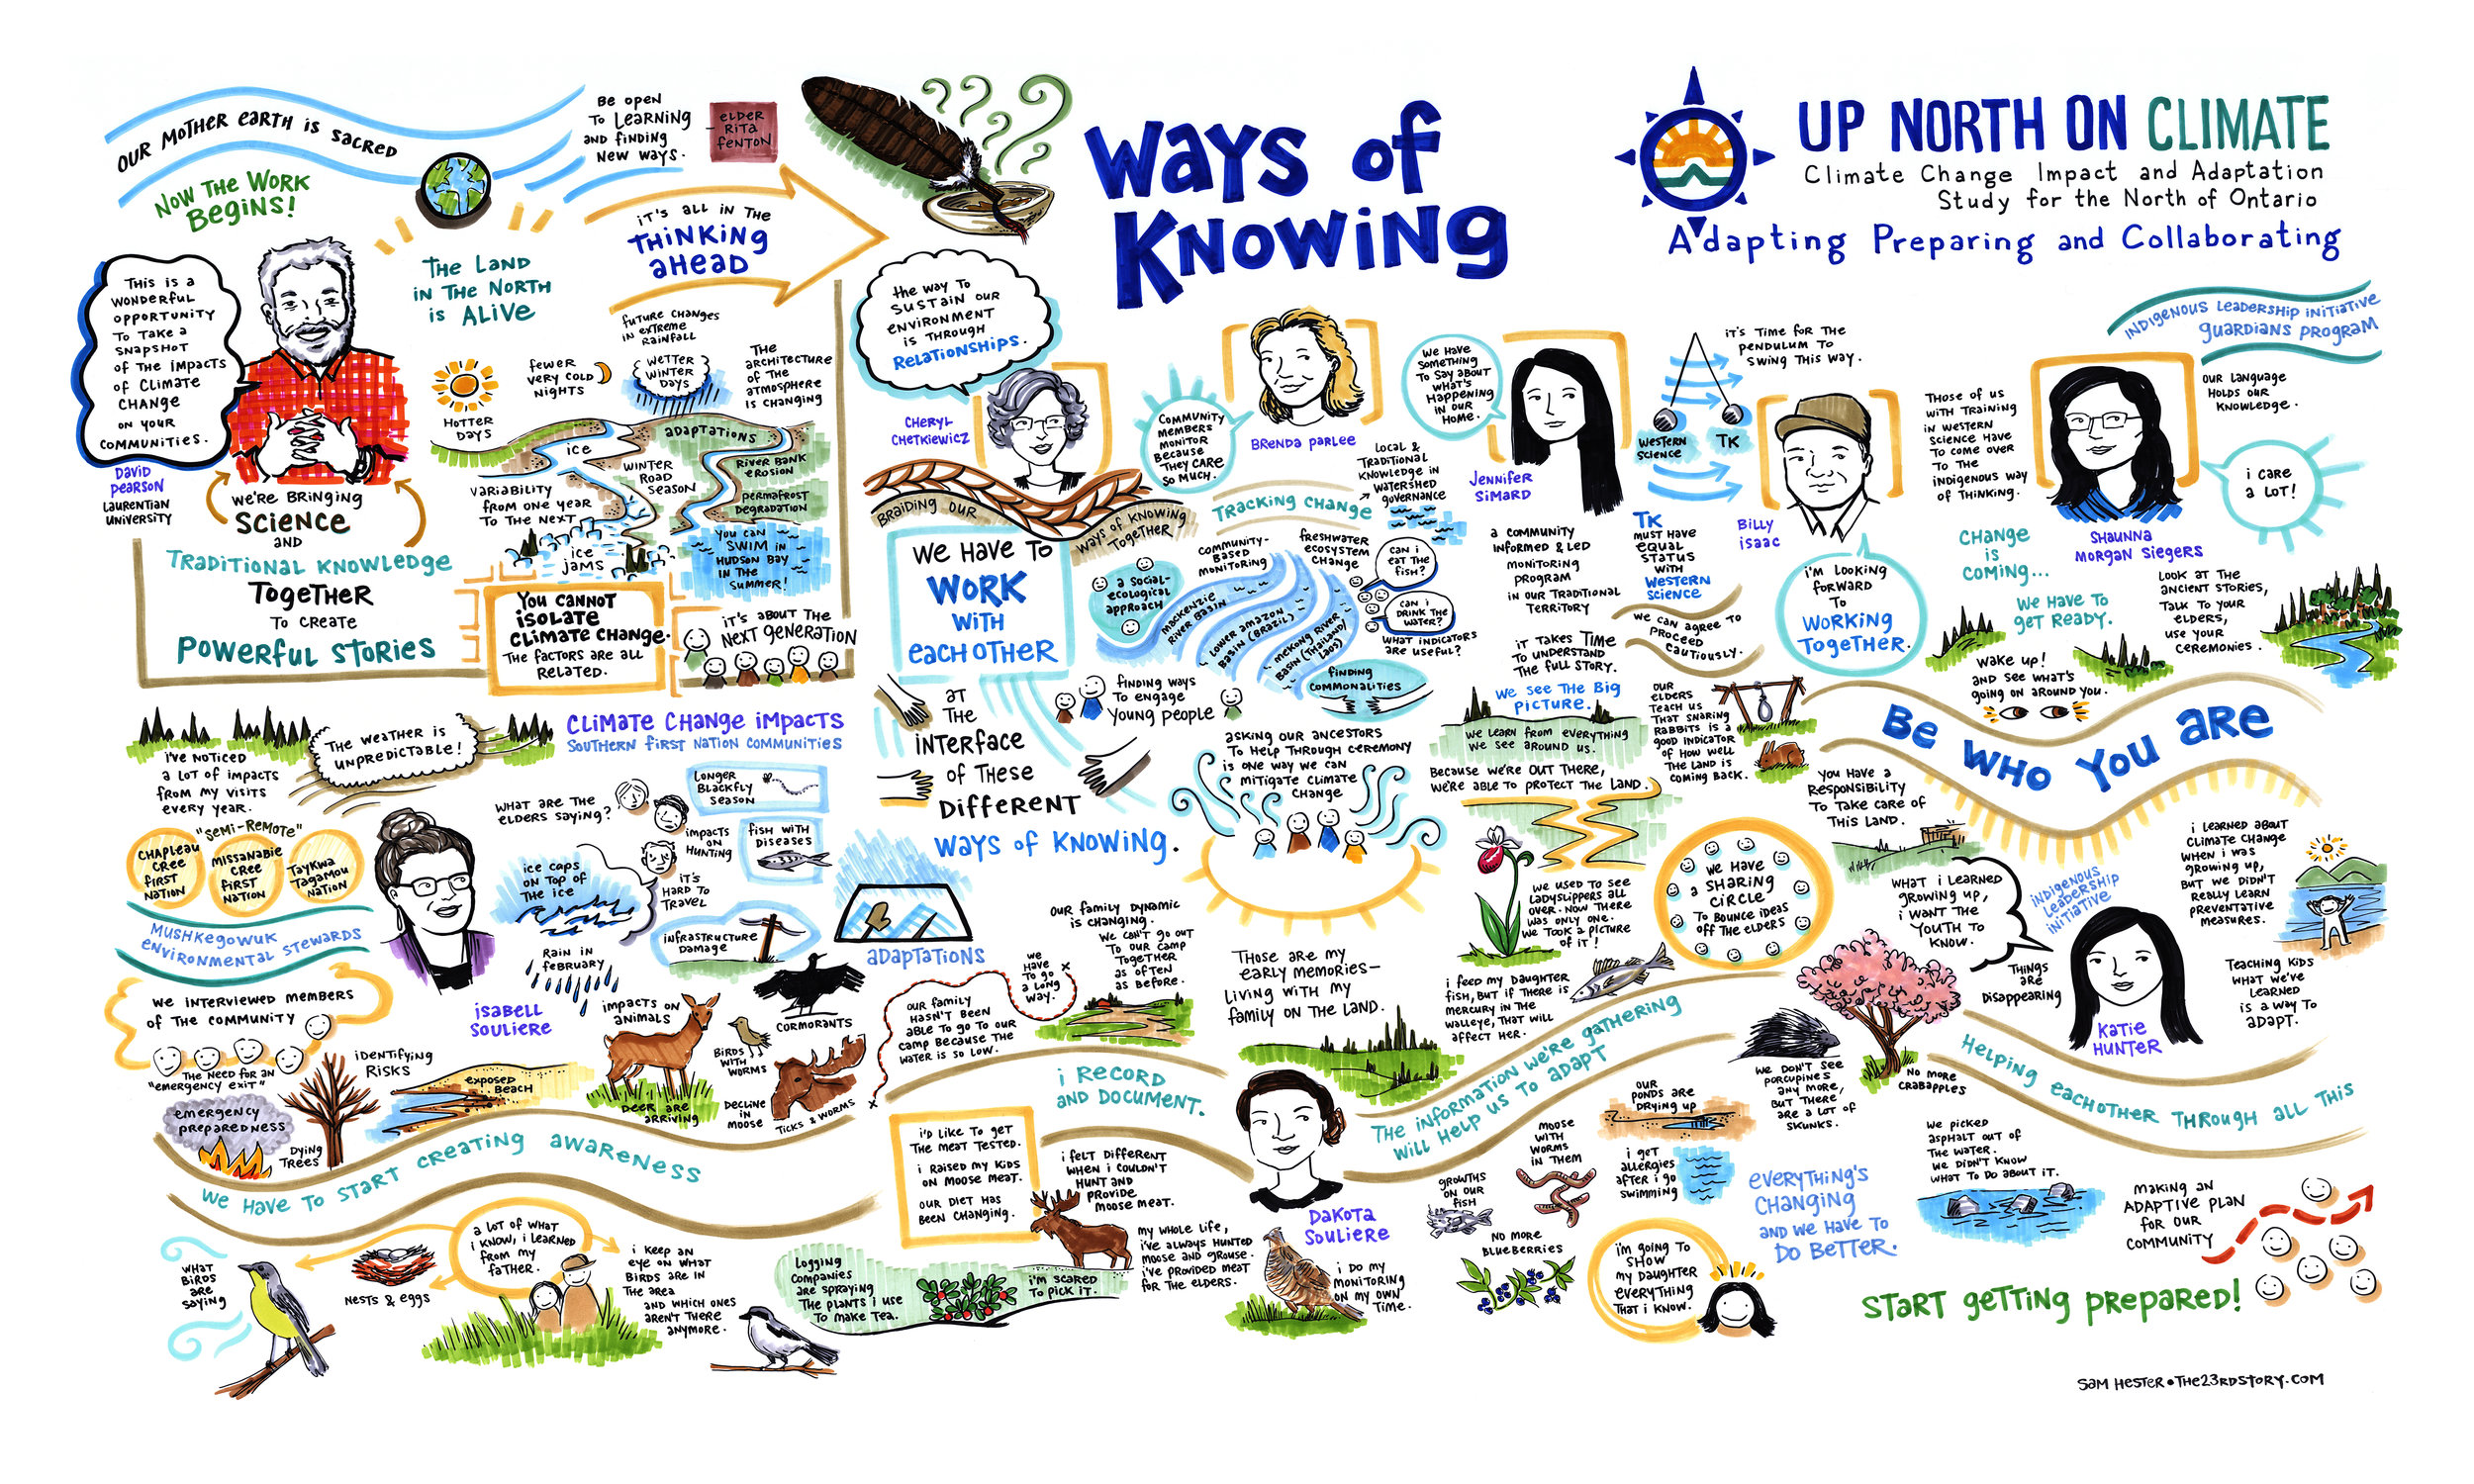 UNOC - Ways of Knowing - small version.jpg